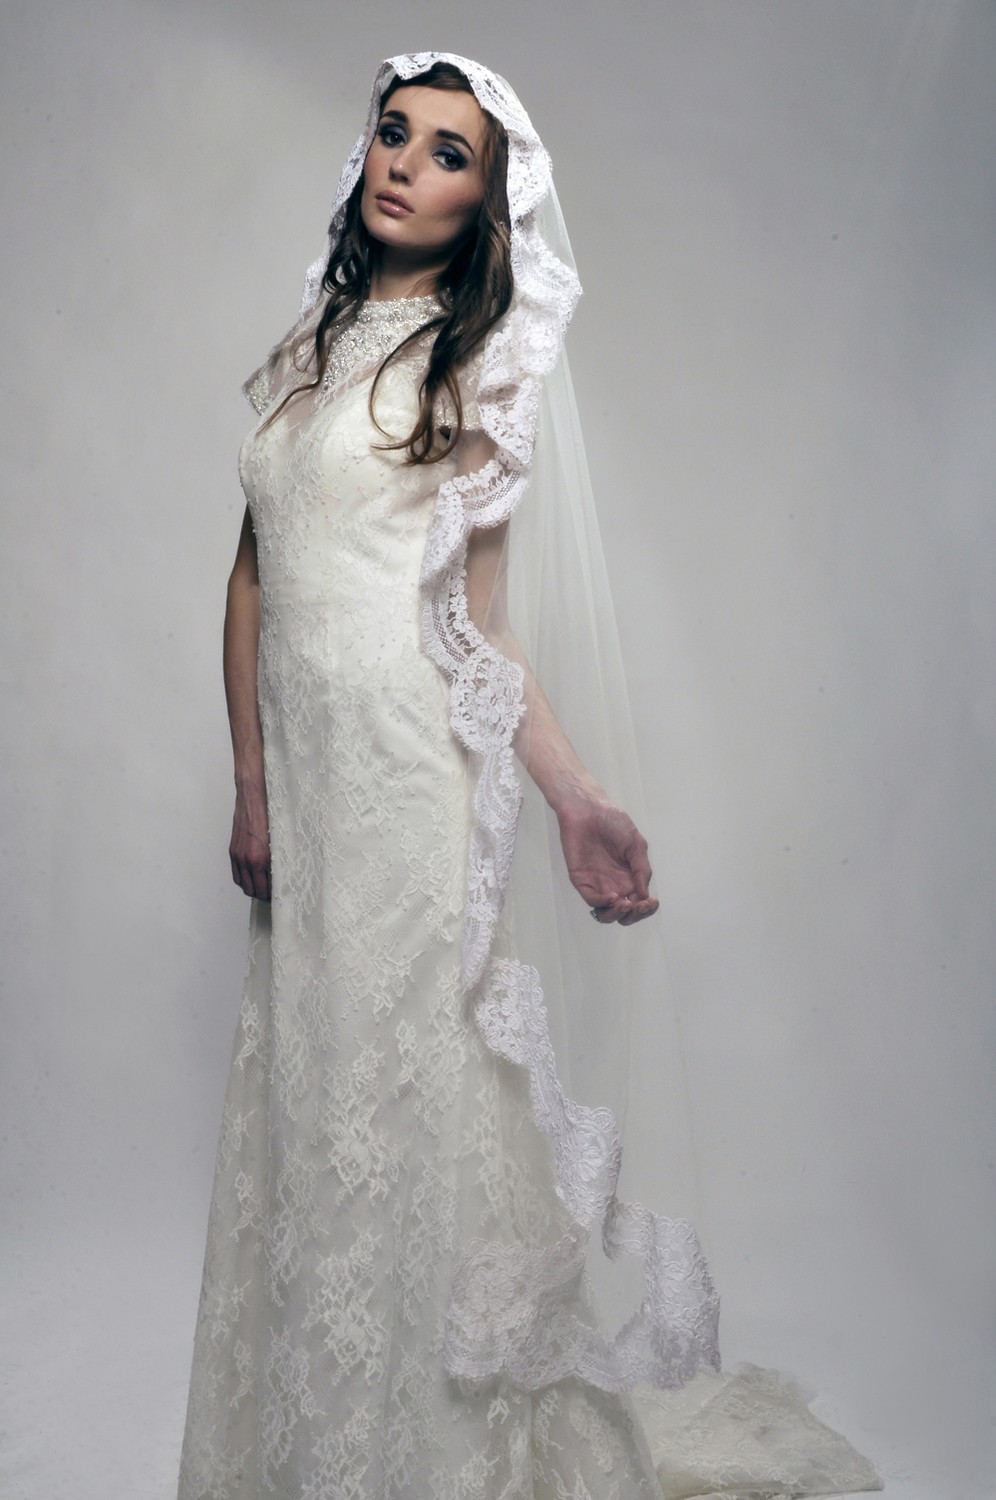 Romantic-wedding-accessories-bridal-head-chic-mantilla-veils-french-net-lace.original